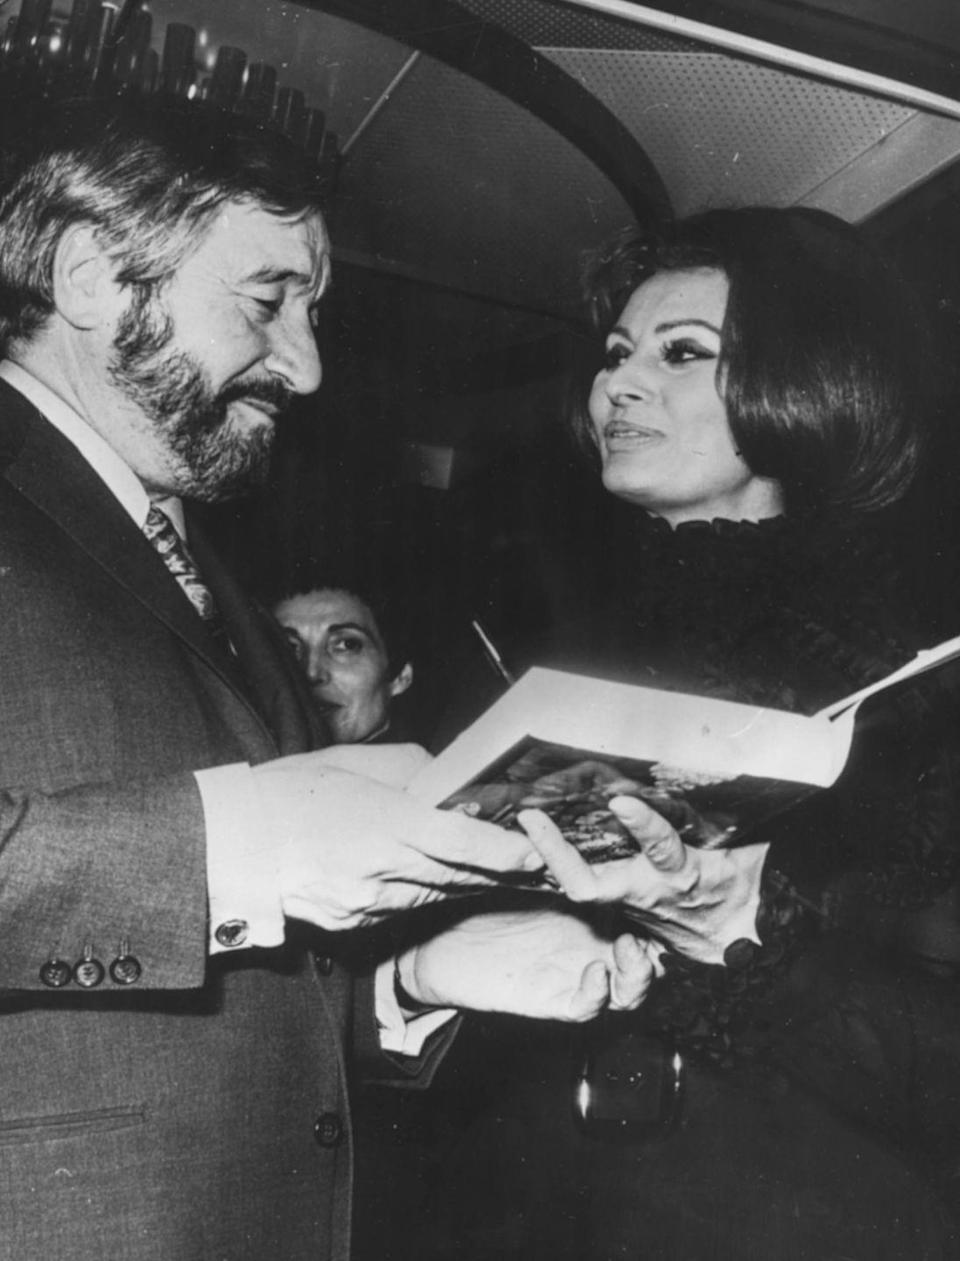 <p>French cartoonist Raymond Peynet talks to Sophia Loren over a copy of her book, <em>Cooking...with Love</em>, which he illustrated for her, aboard the boat Raffaelo, moored in Cannes, France in 1971.</p>